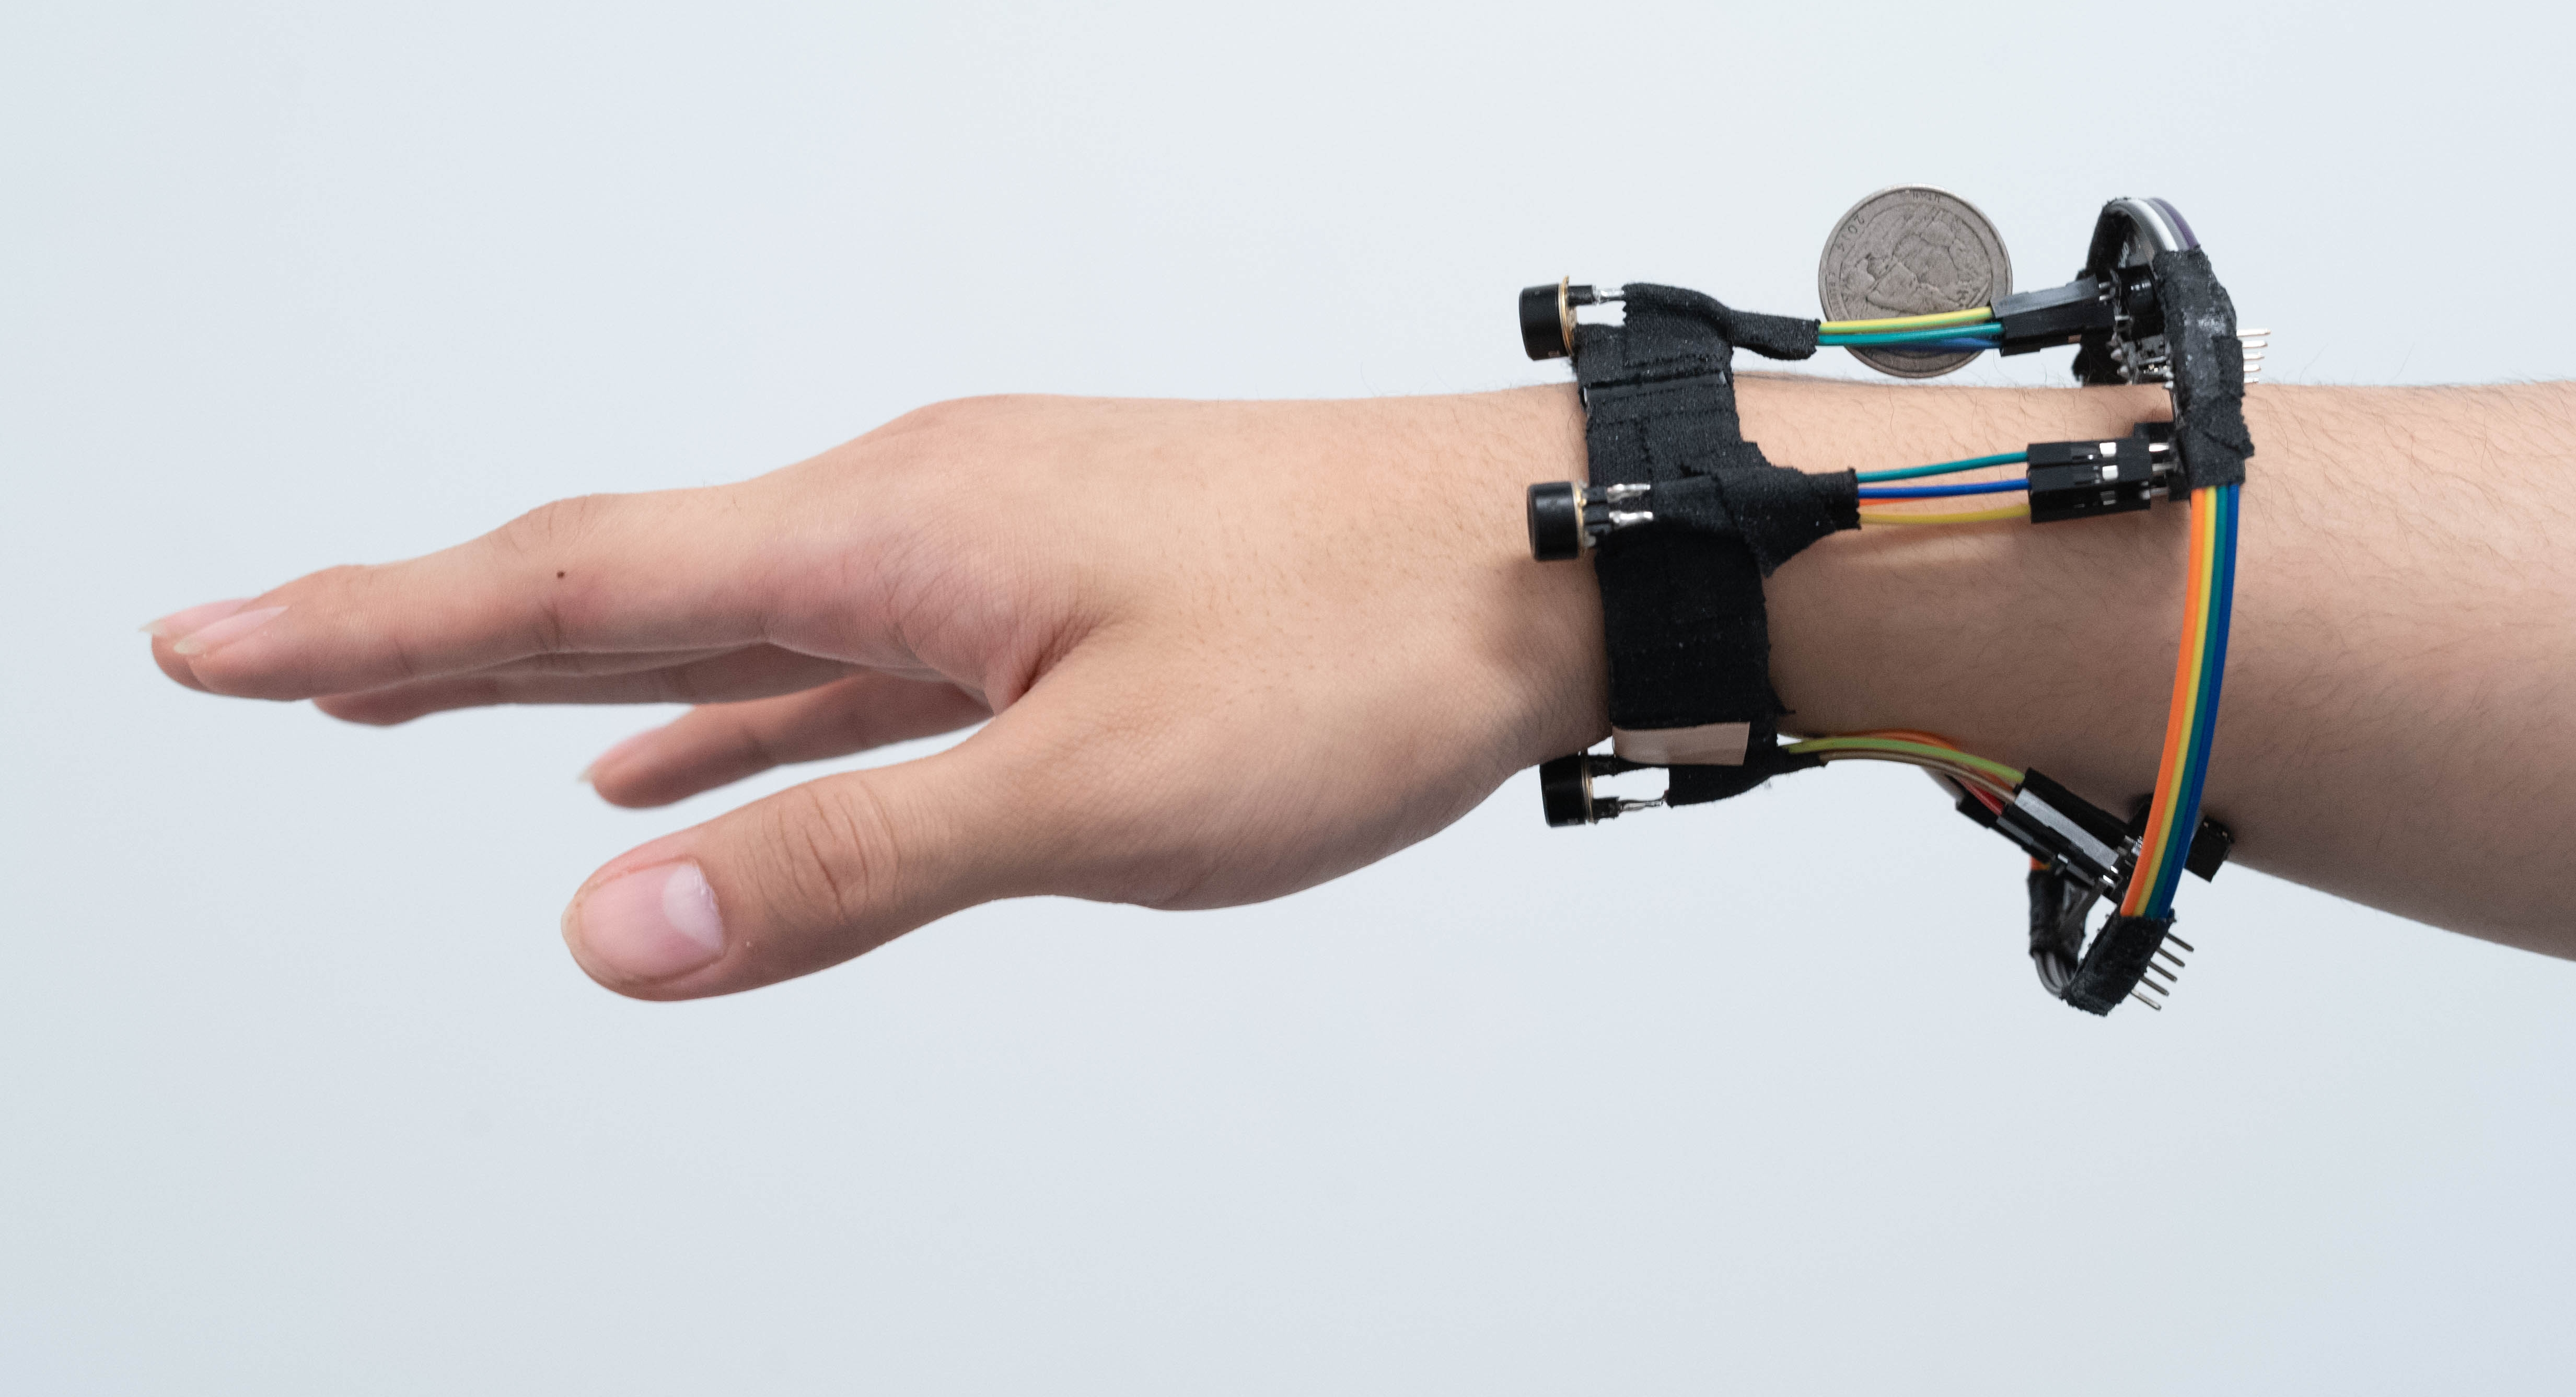 3D-sensing wristband opens possibilities for sign language translation, virtual reality